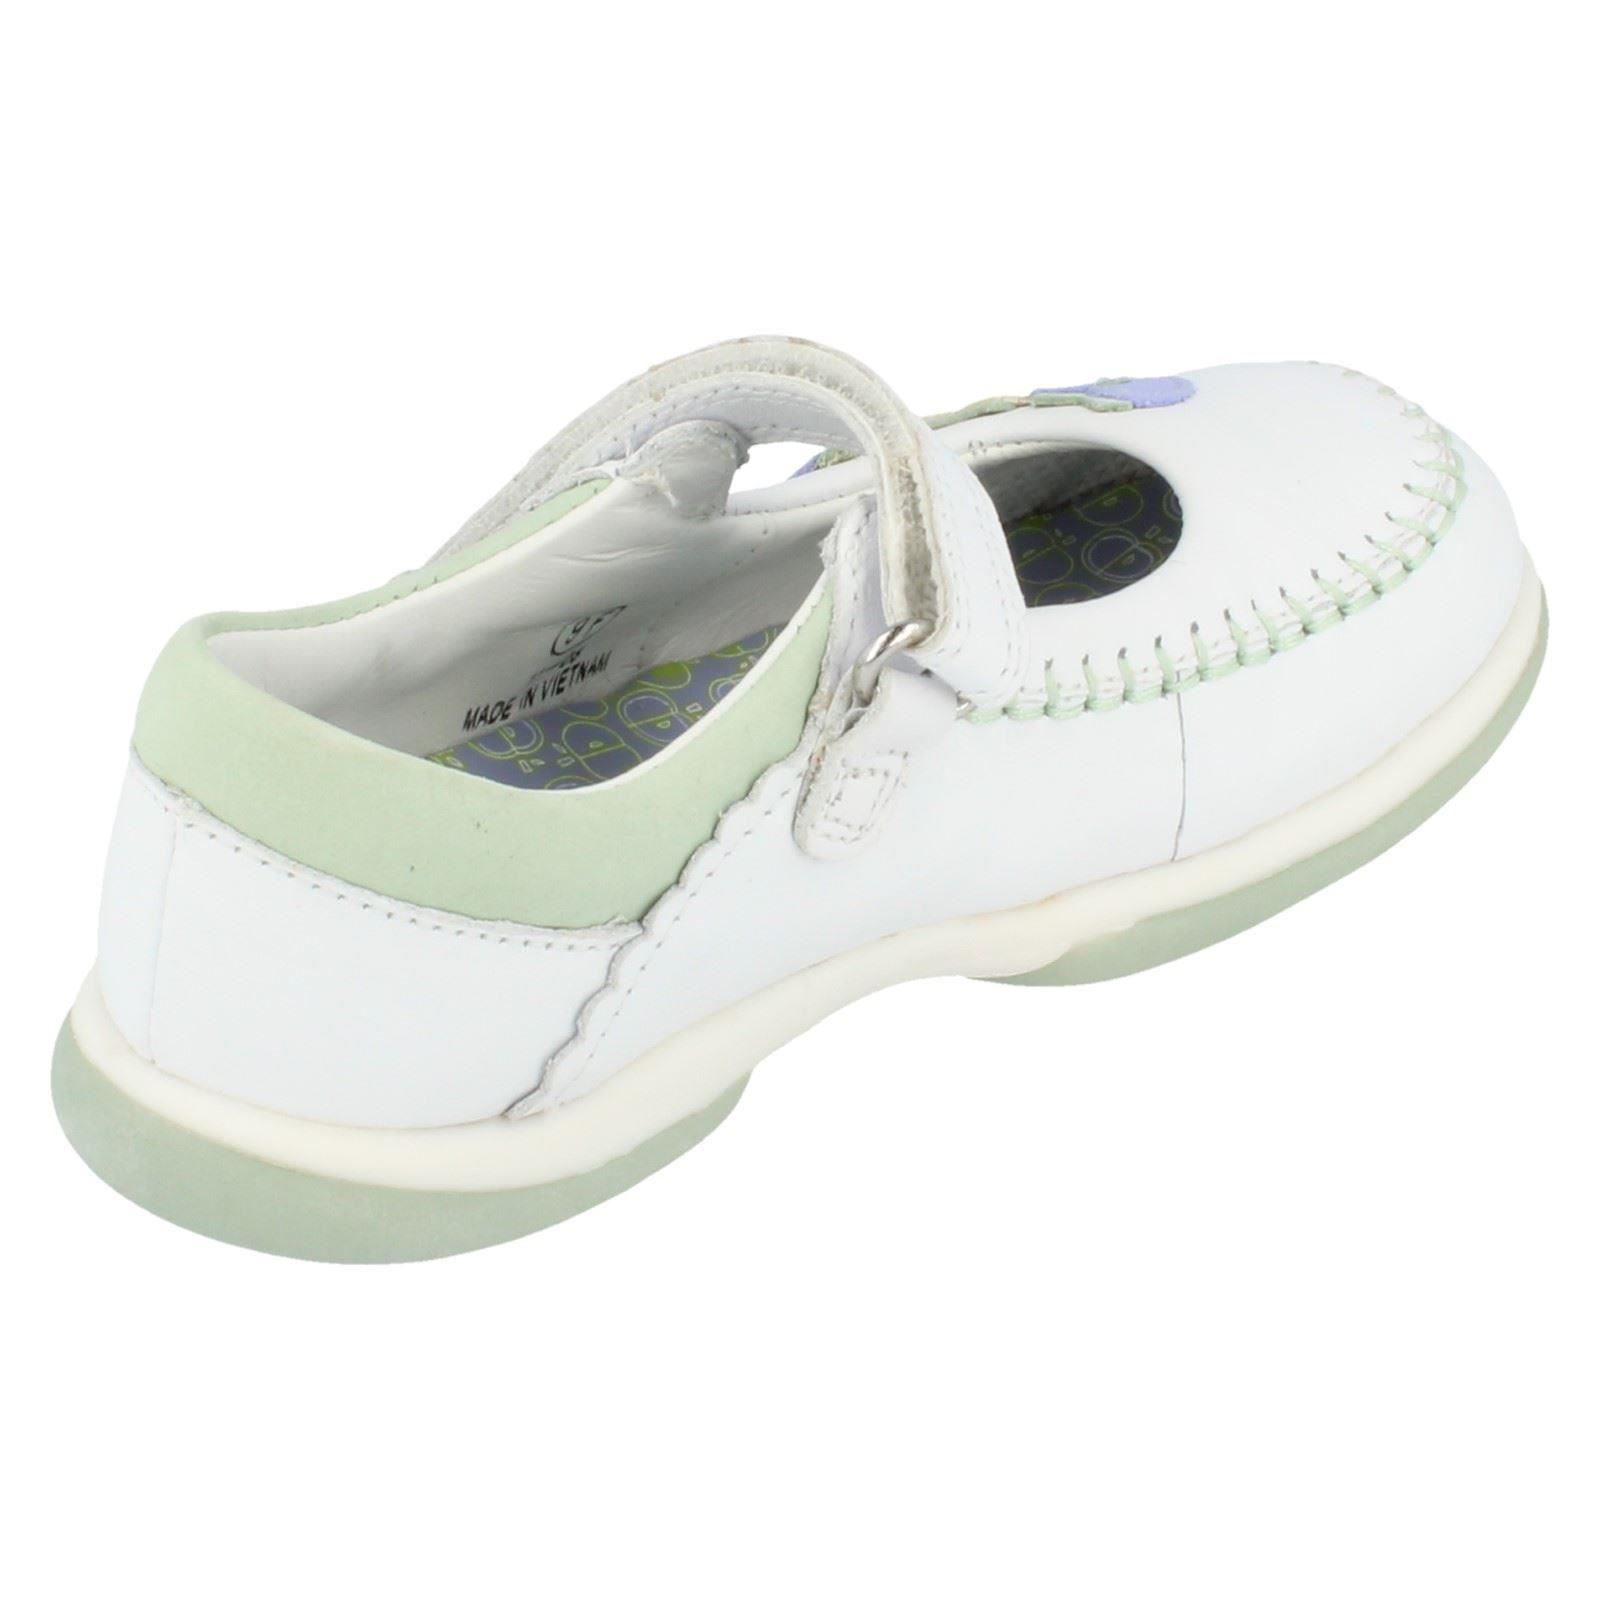 Brillo' Jane Clarks 'manzana Niña Mary Zapatos qfcAn6